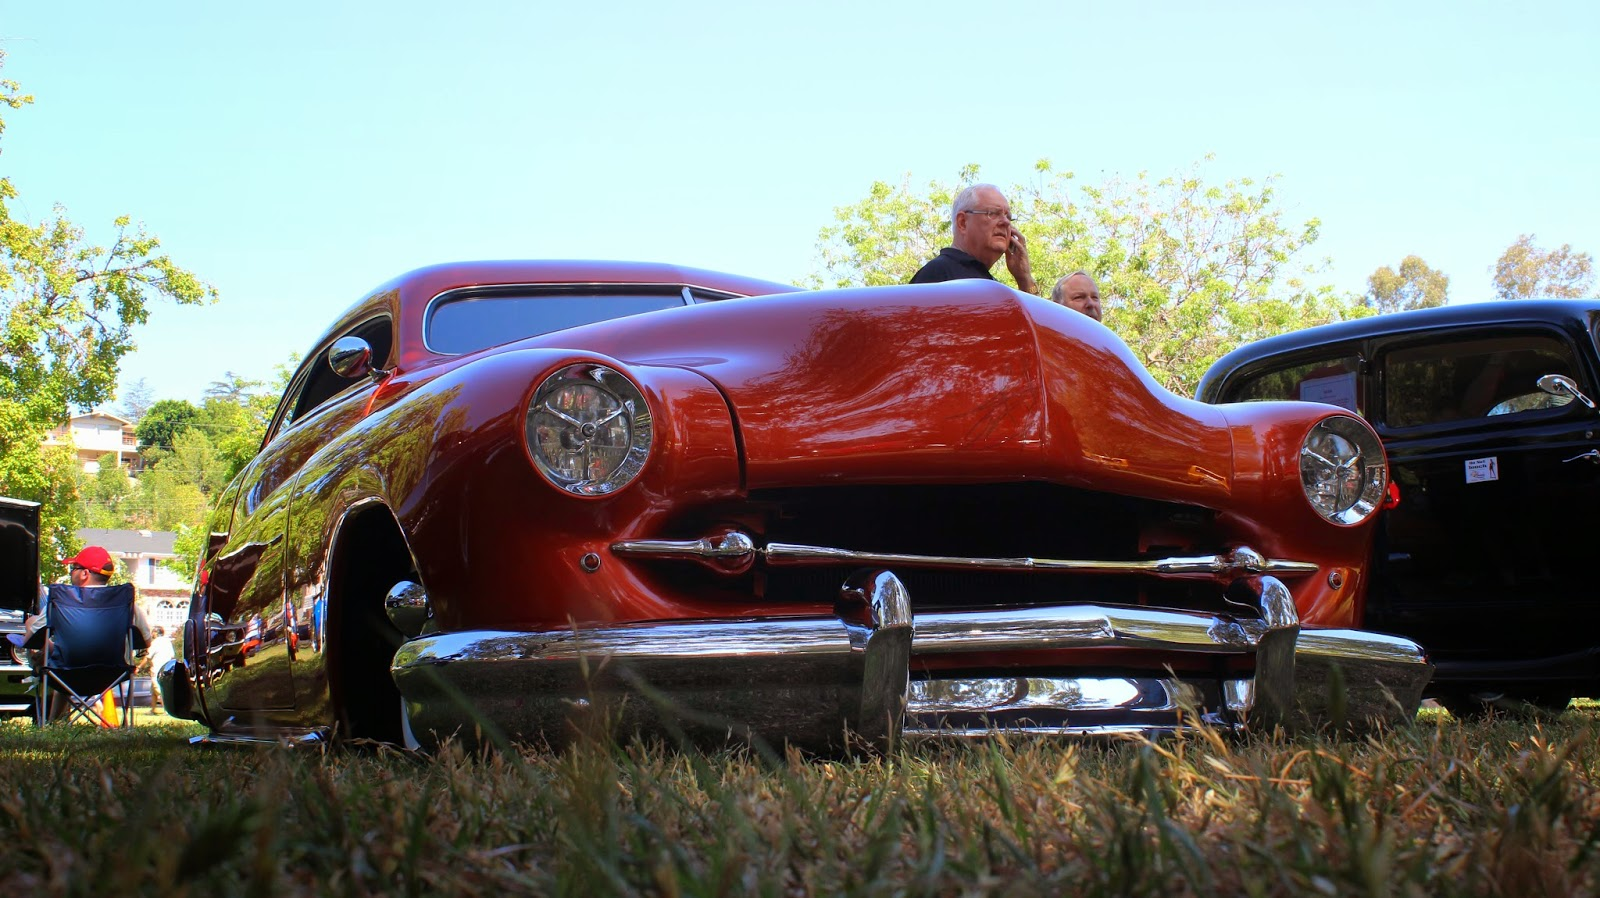 Covering Classic Cars : 11th Annual LAPD VTAC Car Show in Woodland ...